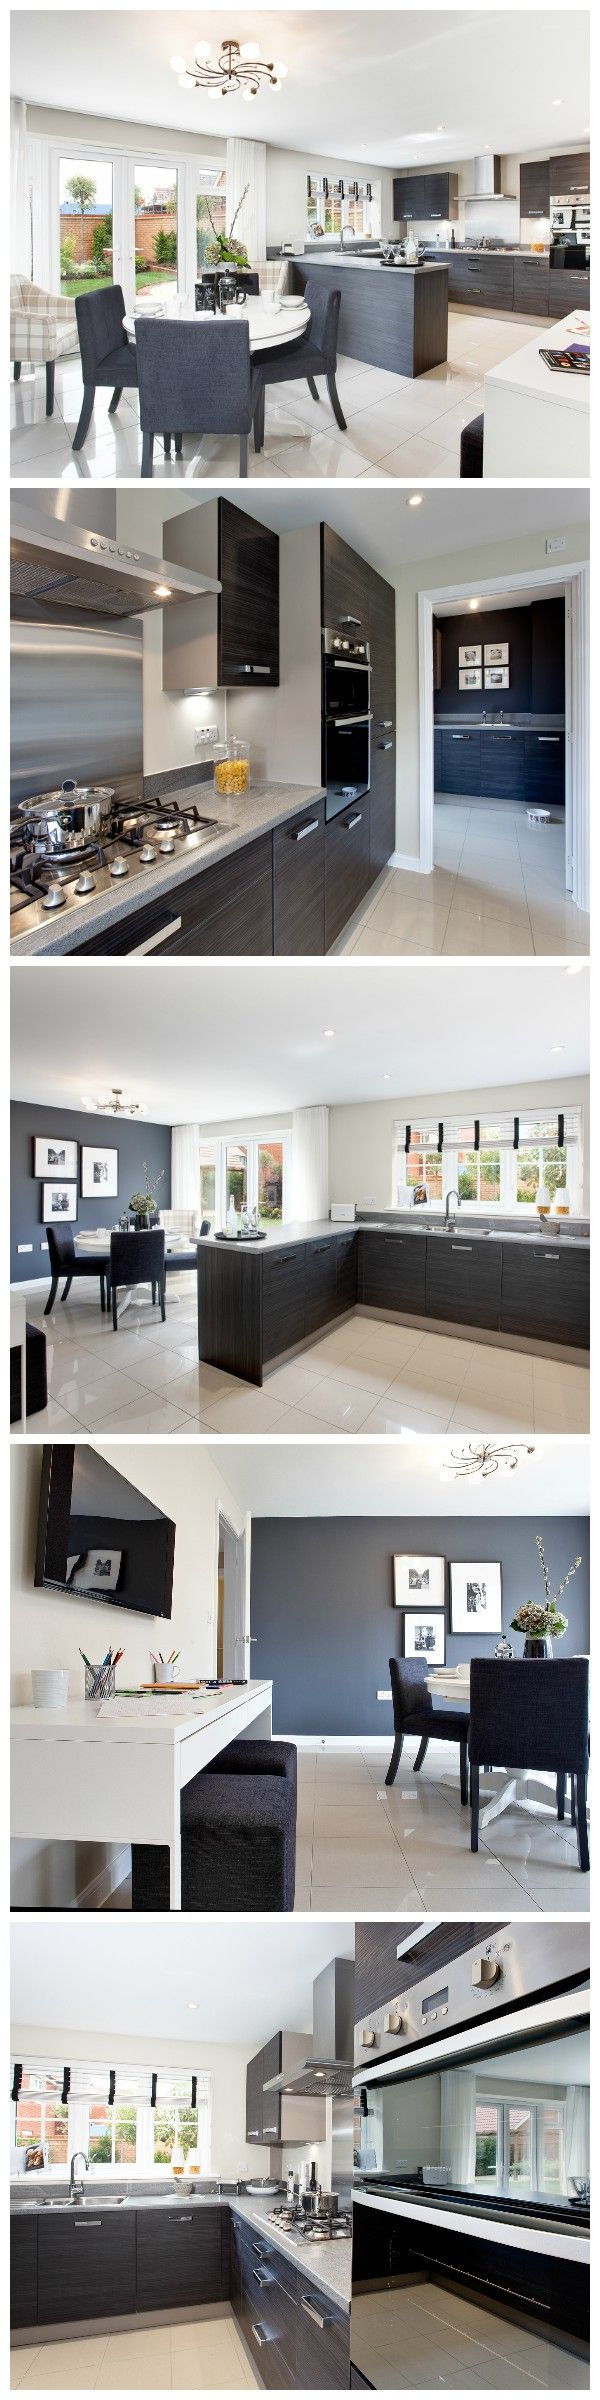 Kitchen collage | The Arundel at The Ashes in Takeley | Bovis Homes